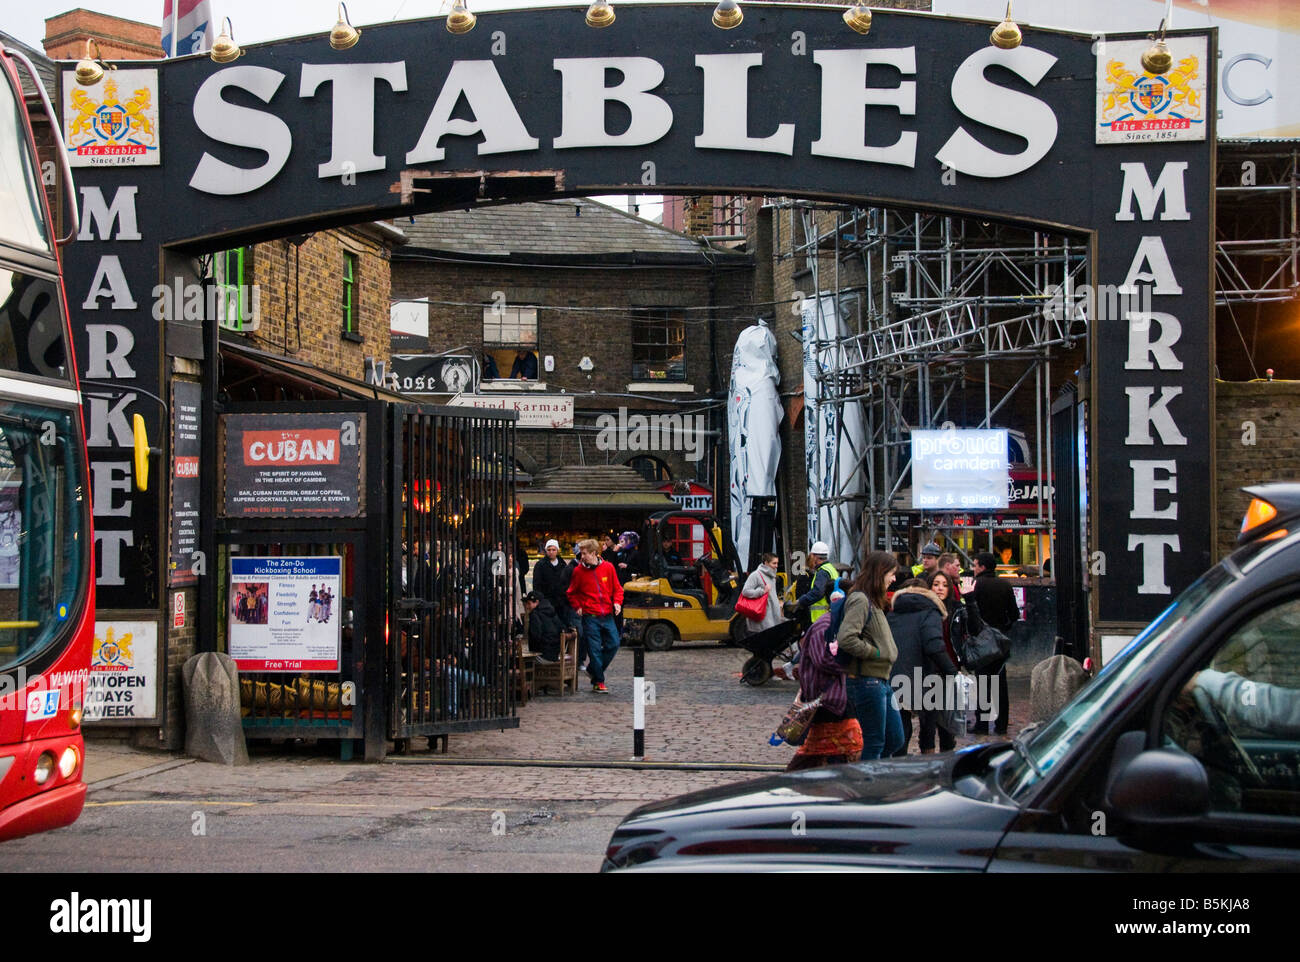 The Stables in Camden Market Chalk Farm Road in London - Stock Image